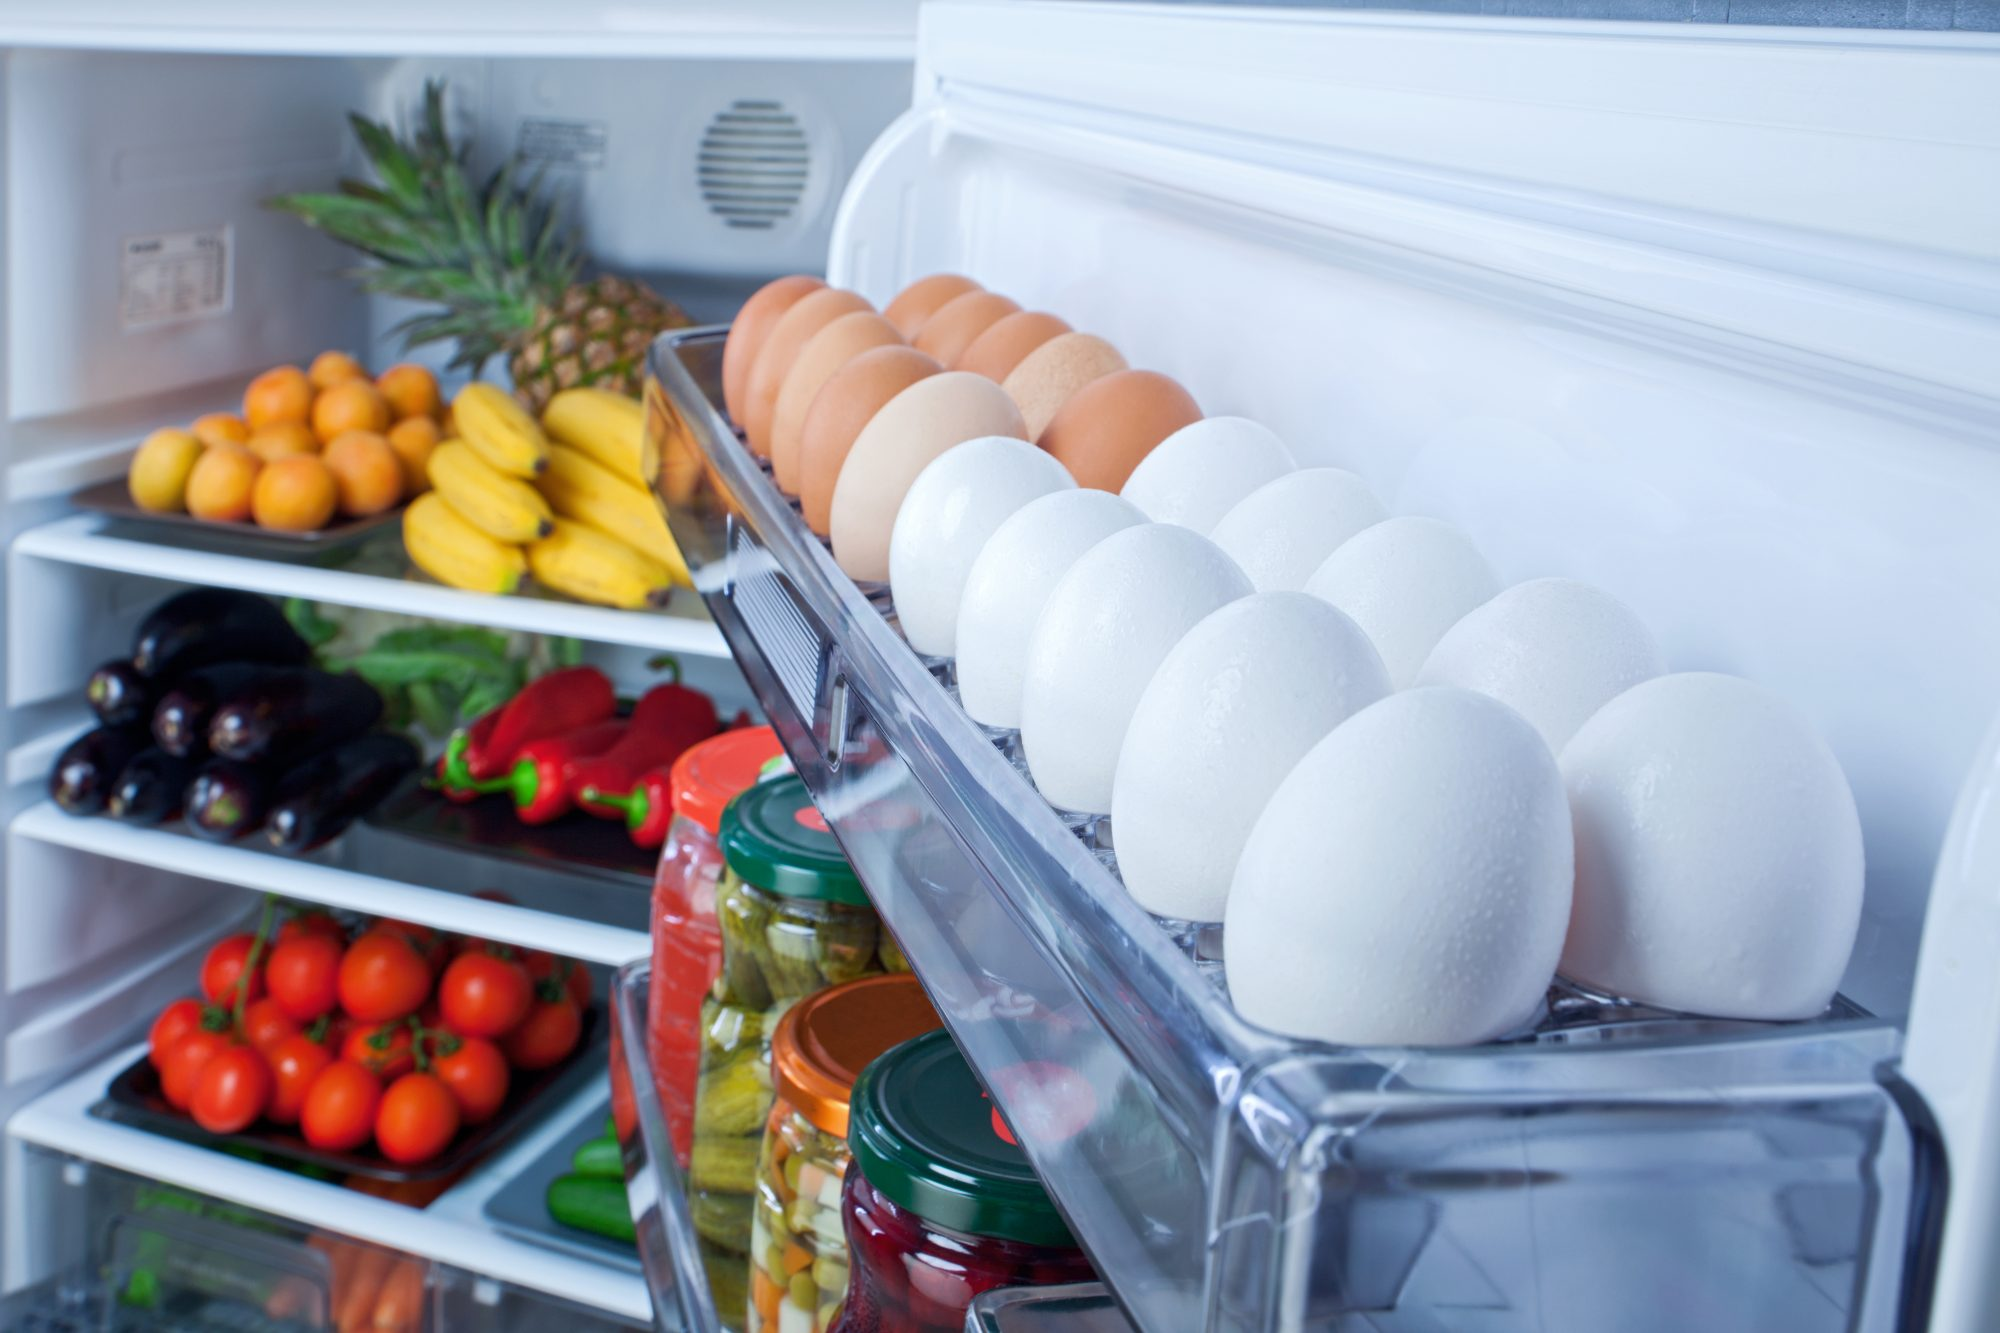 10 Things You Shouldn't Store in Your Fridge